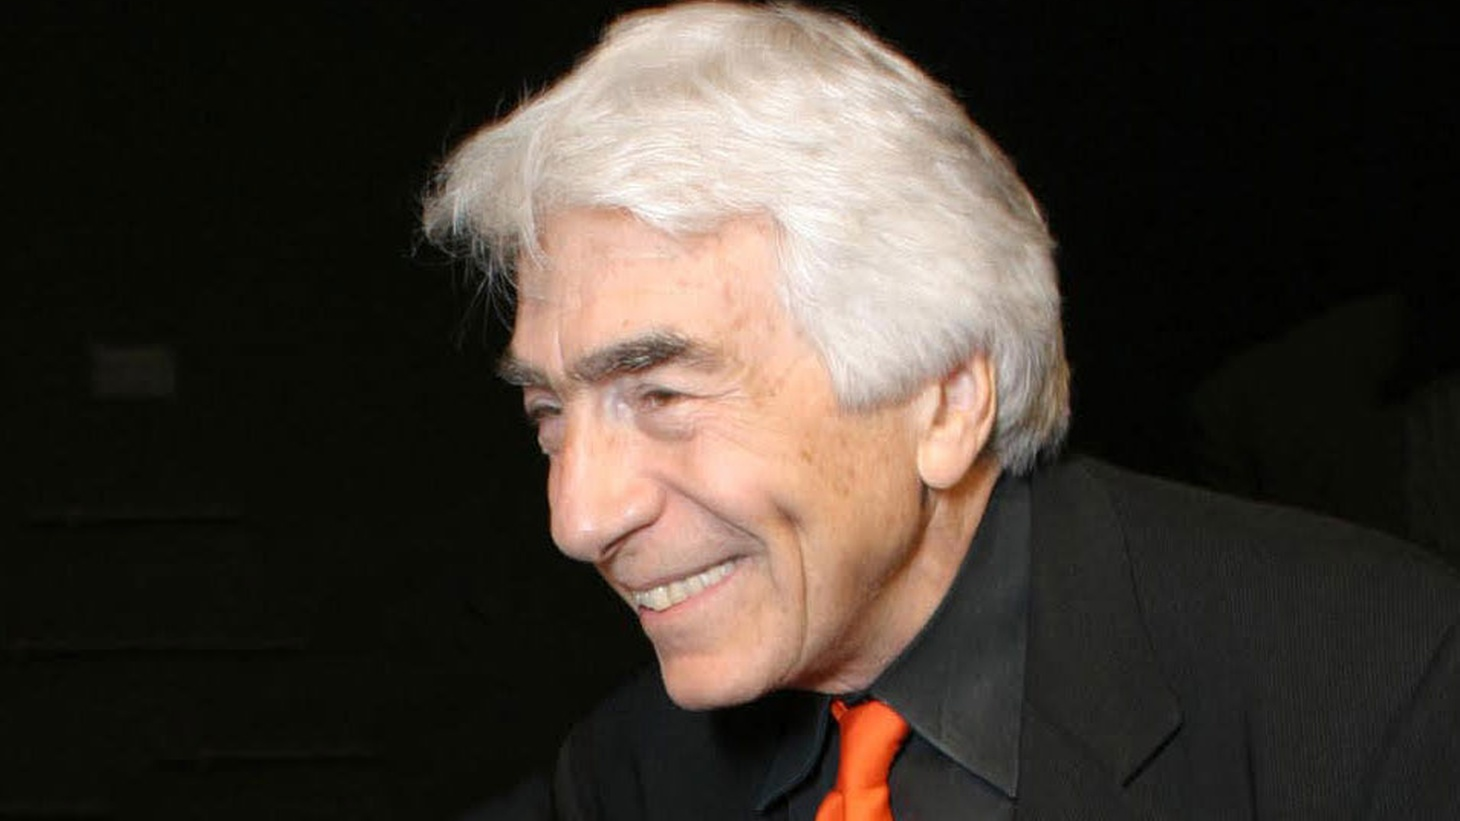 Last night at the Ahmanson Theater, Center Theater Group held a memorial for their founding artistic director, Gordon Davidson.